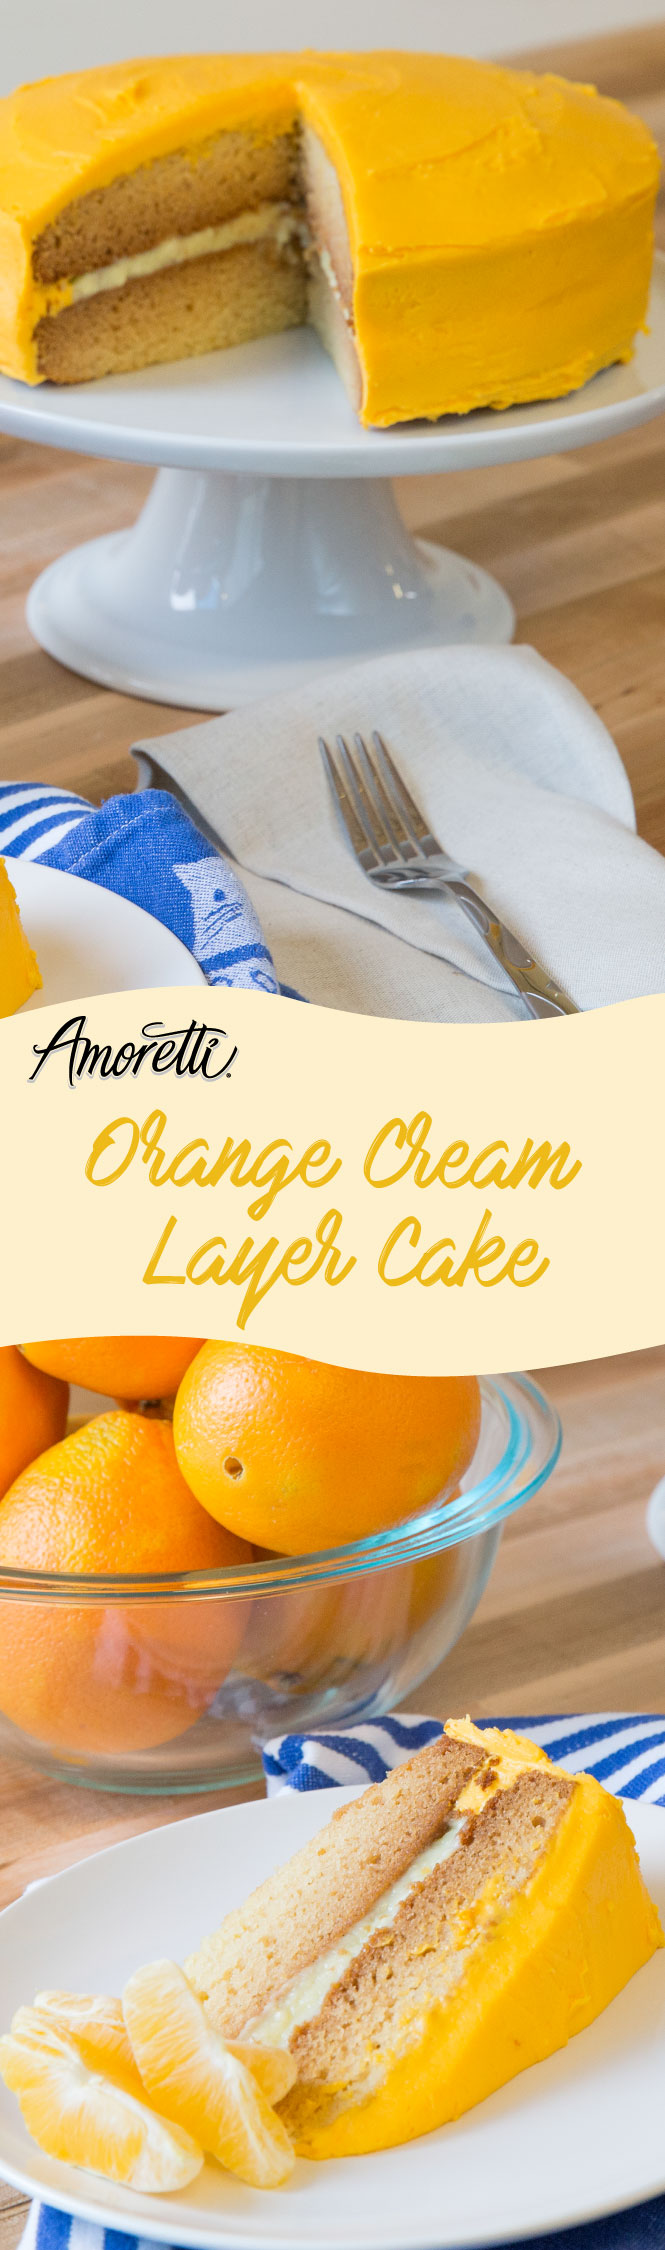 This Orange Cream Cake is a dream come true!